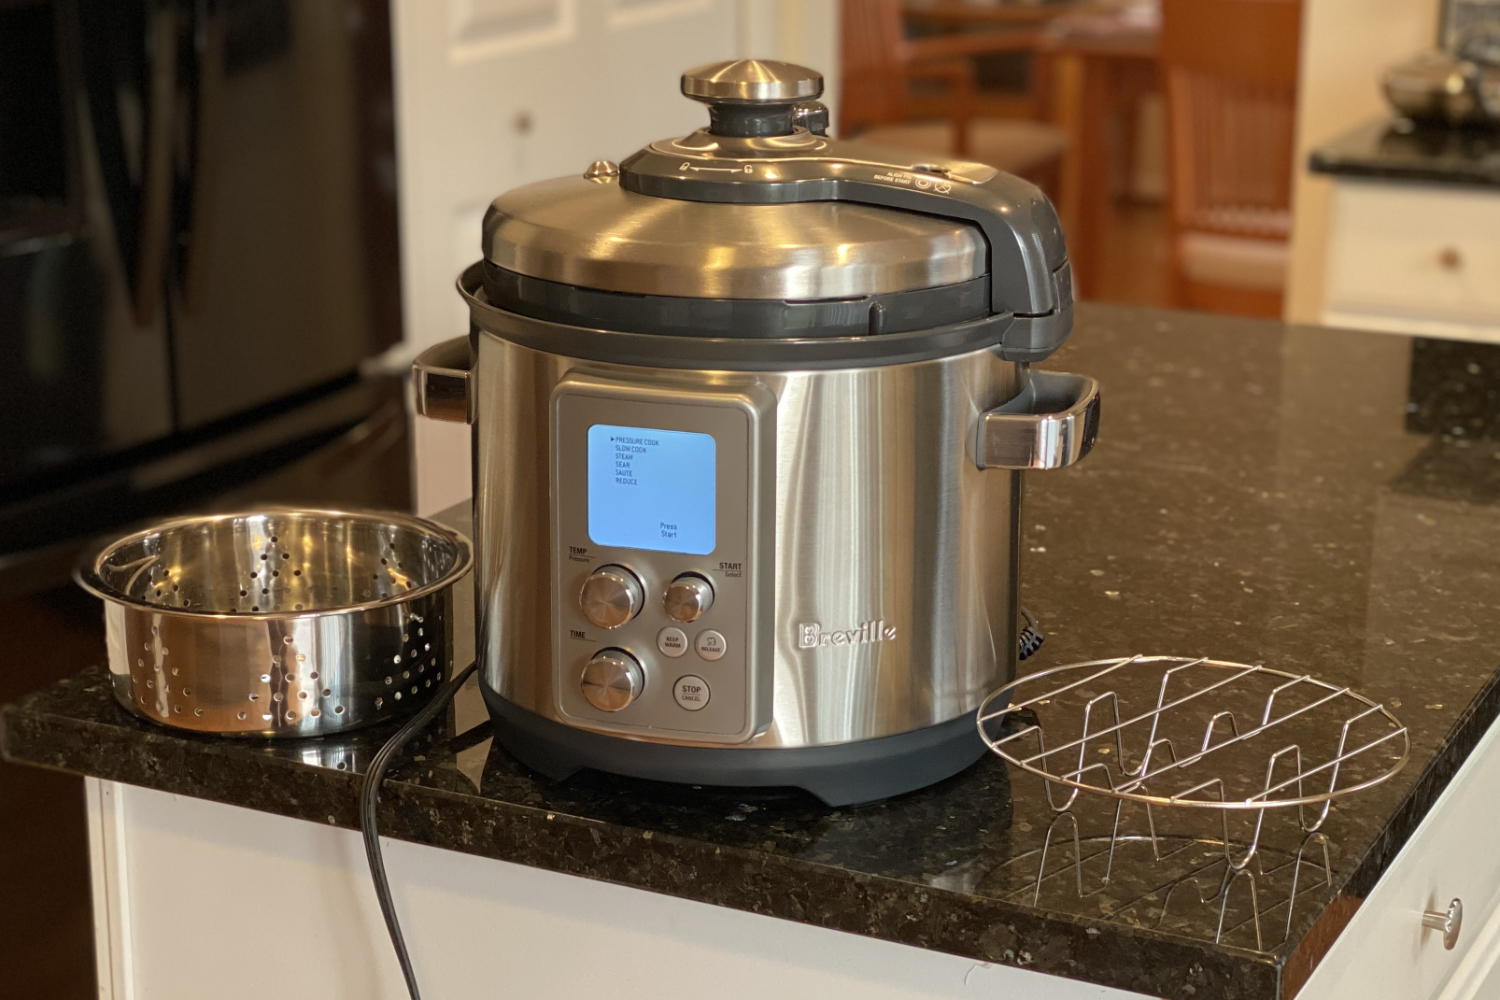 breville fast slow pro with accessories